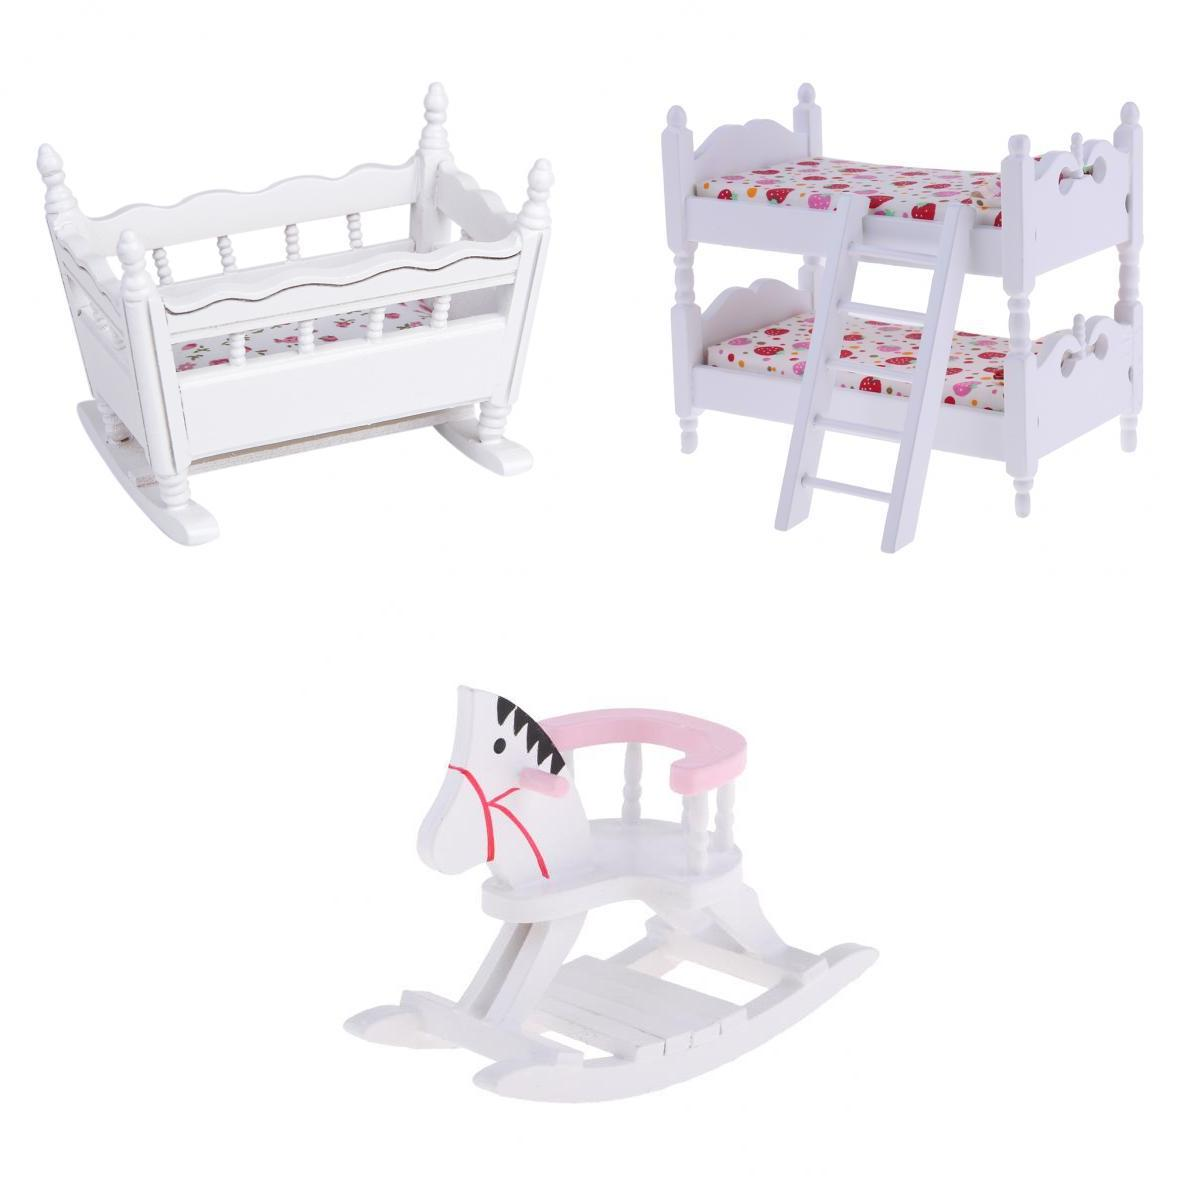 White 1/12 Scale Dollhouse Furniture Children Nursery Bedroom Bunk Bed Cradle Rocking Horse Set